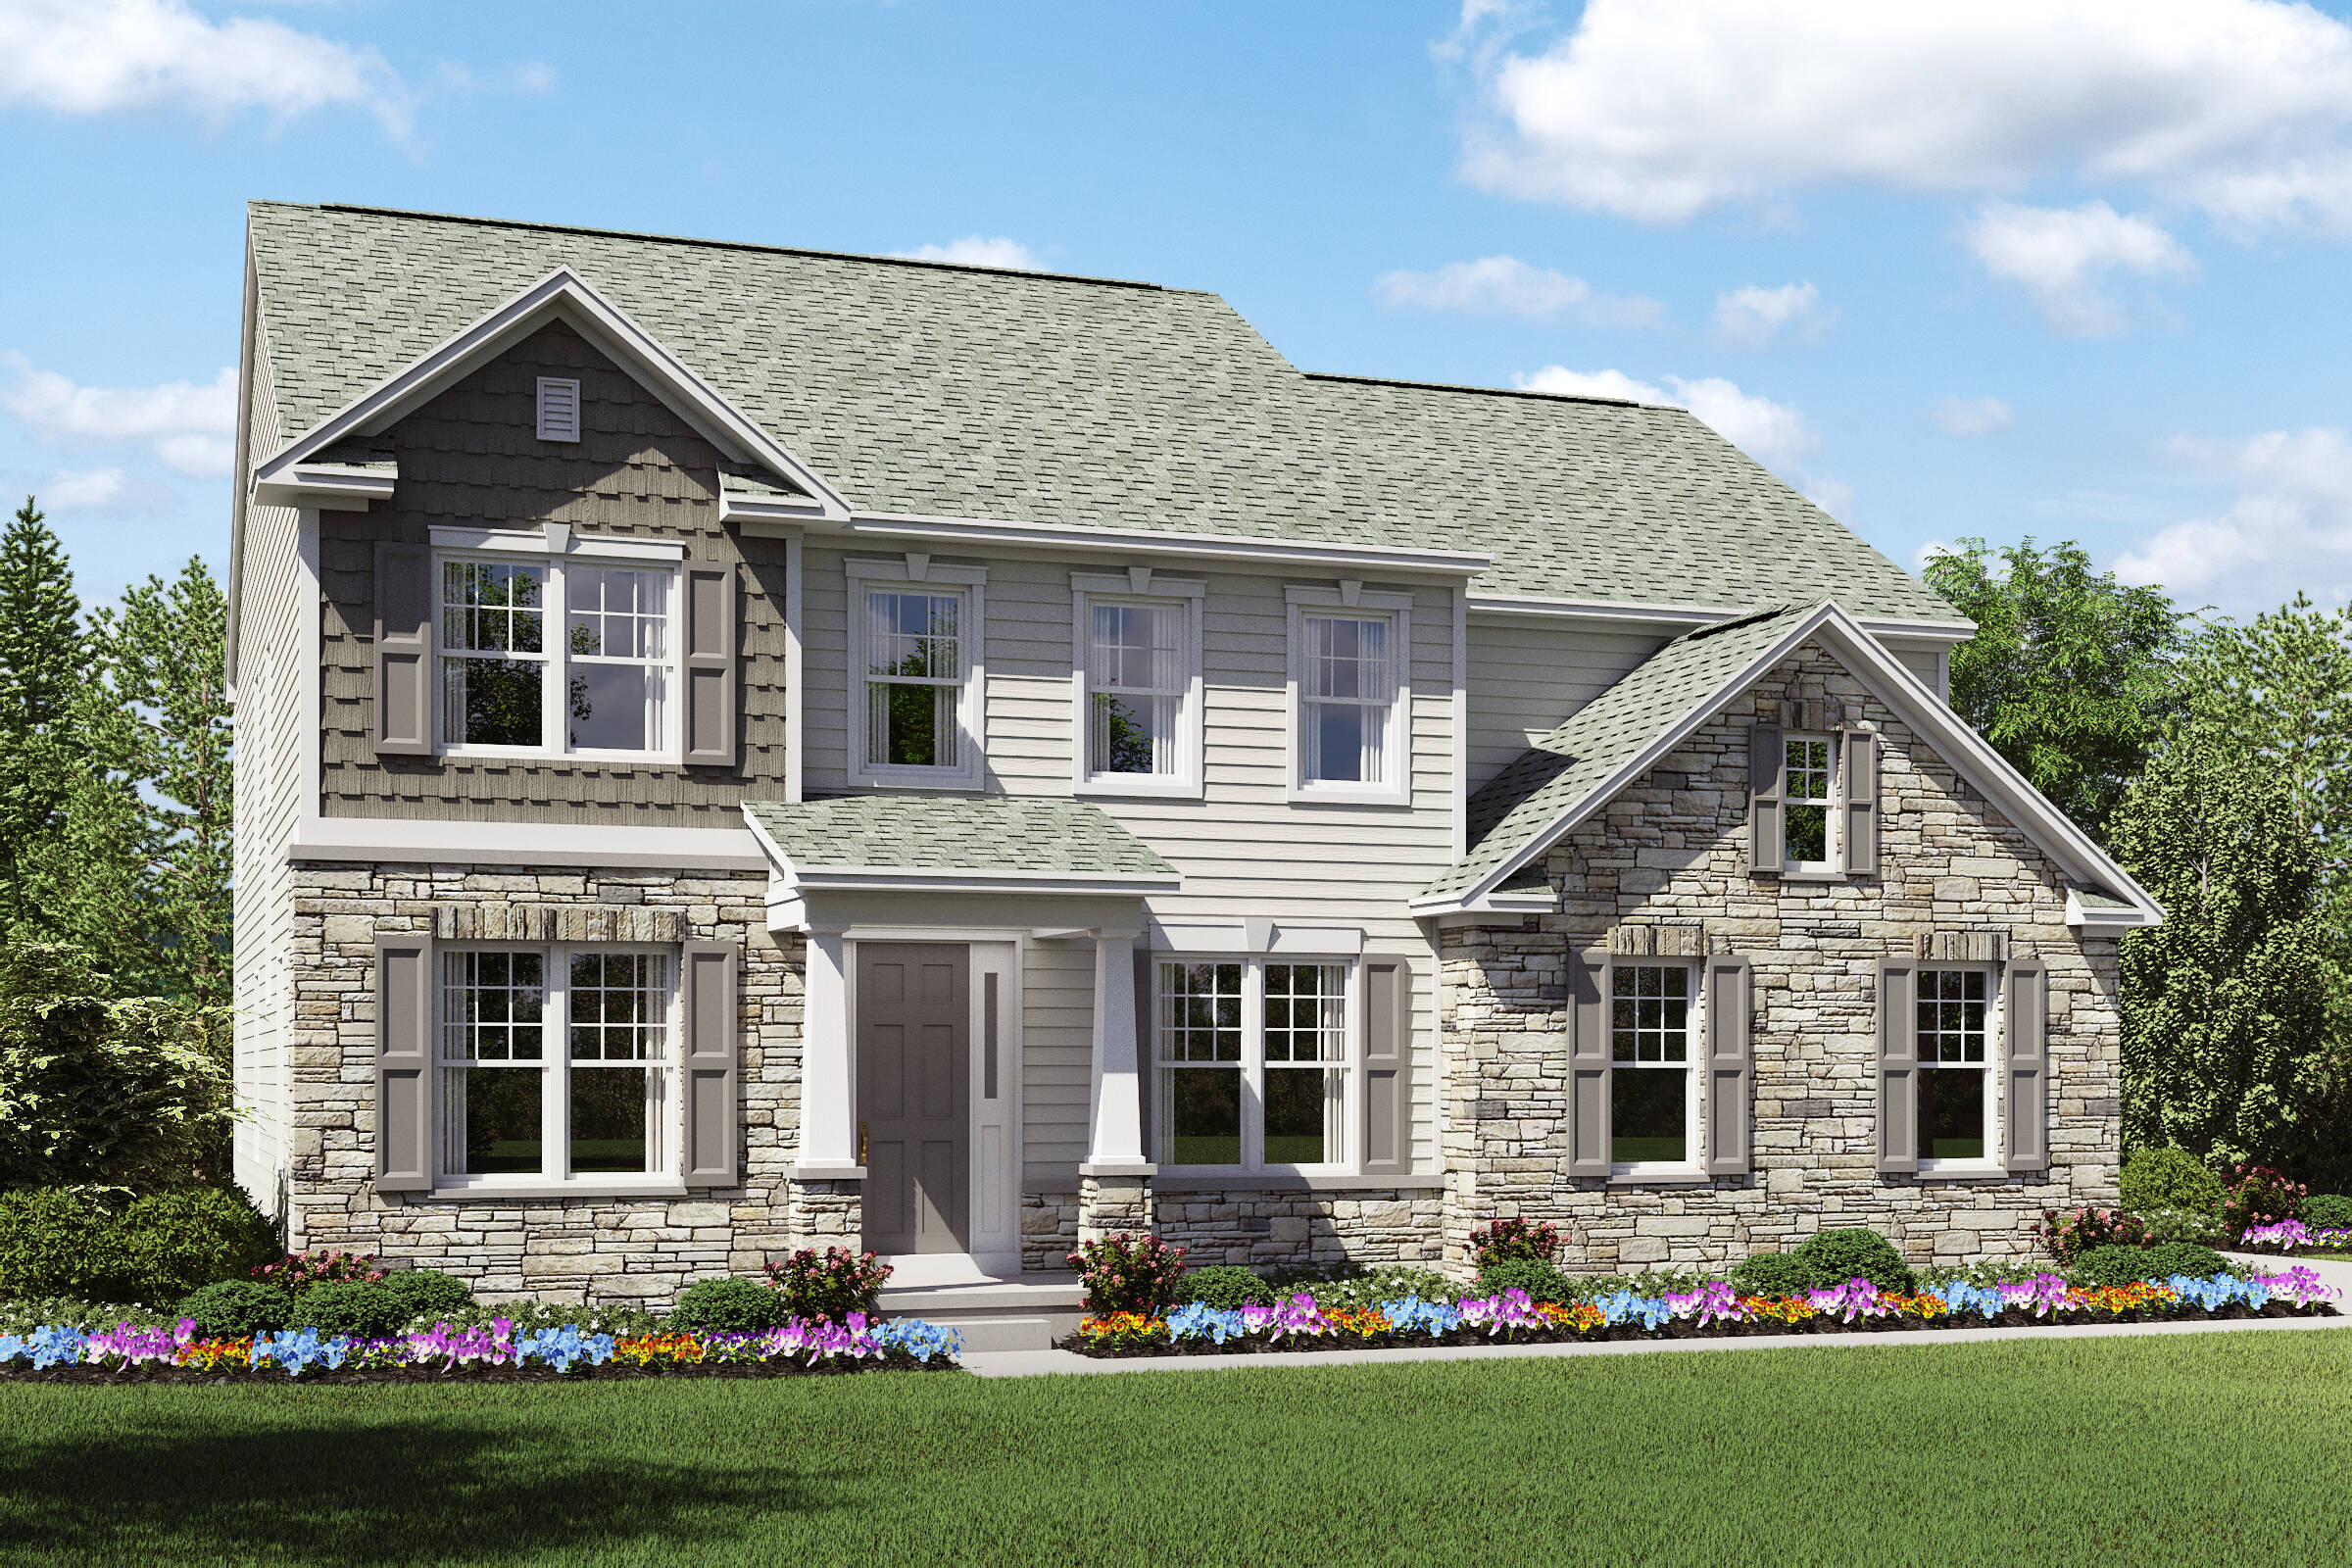 ... Beaumont DT SL New Home Designs K Hovnanian Homes